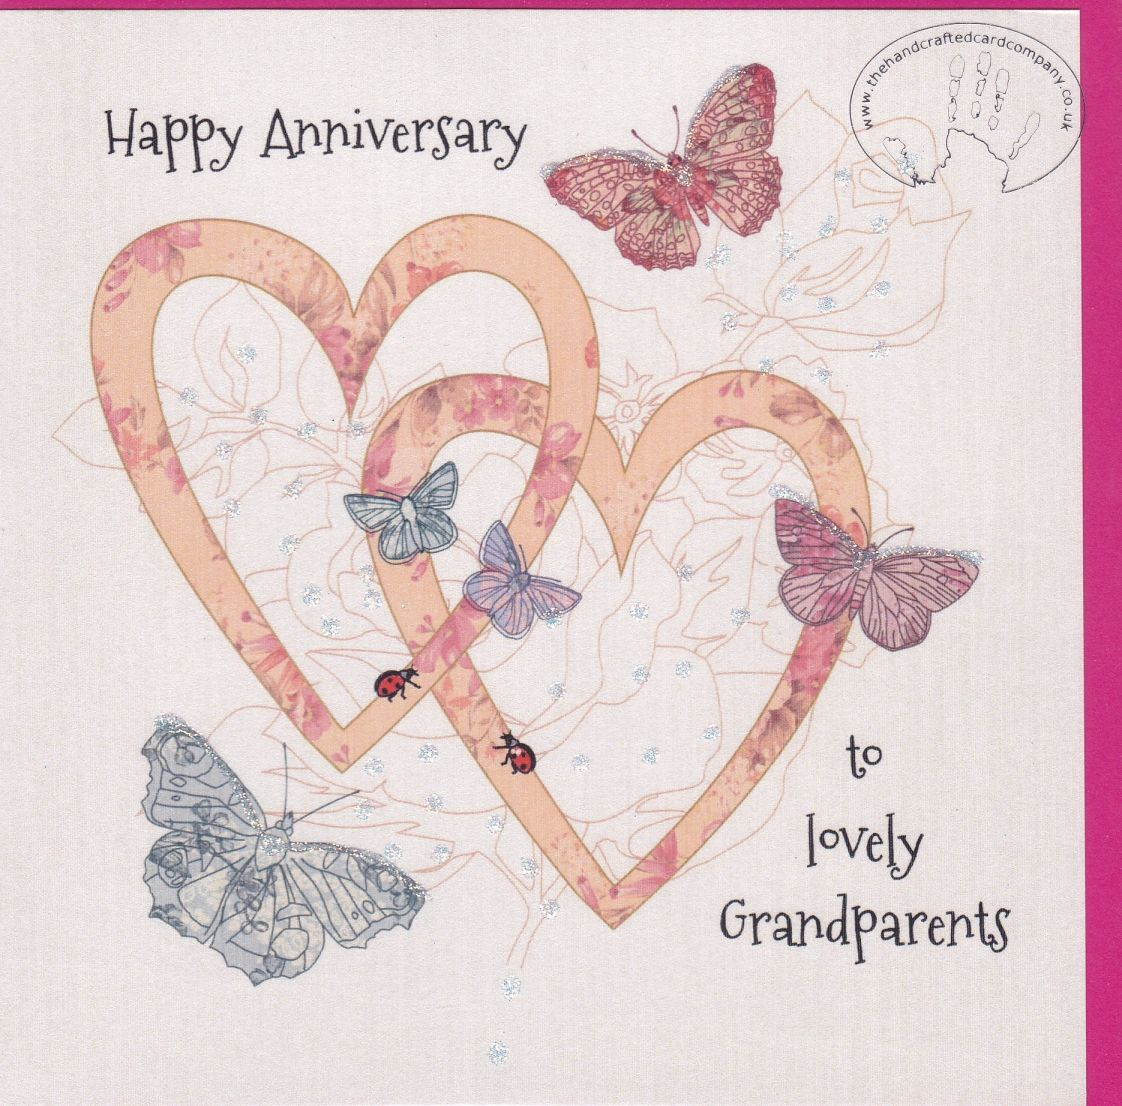 Anniversary cards for grandparents